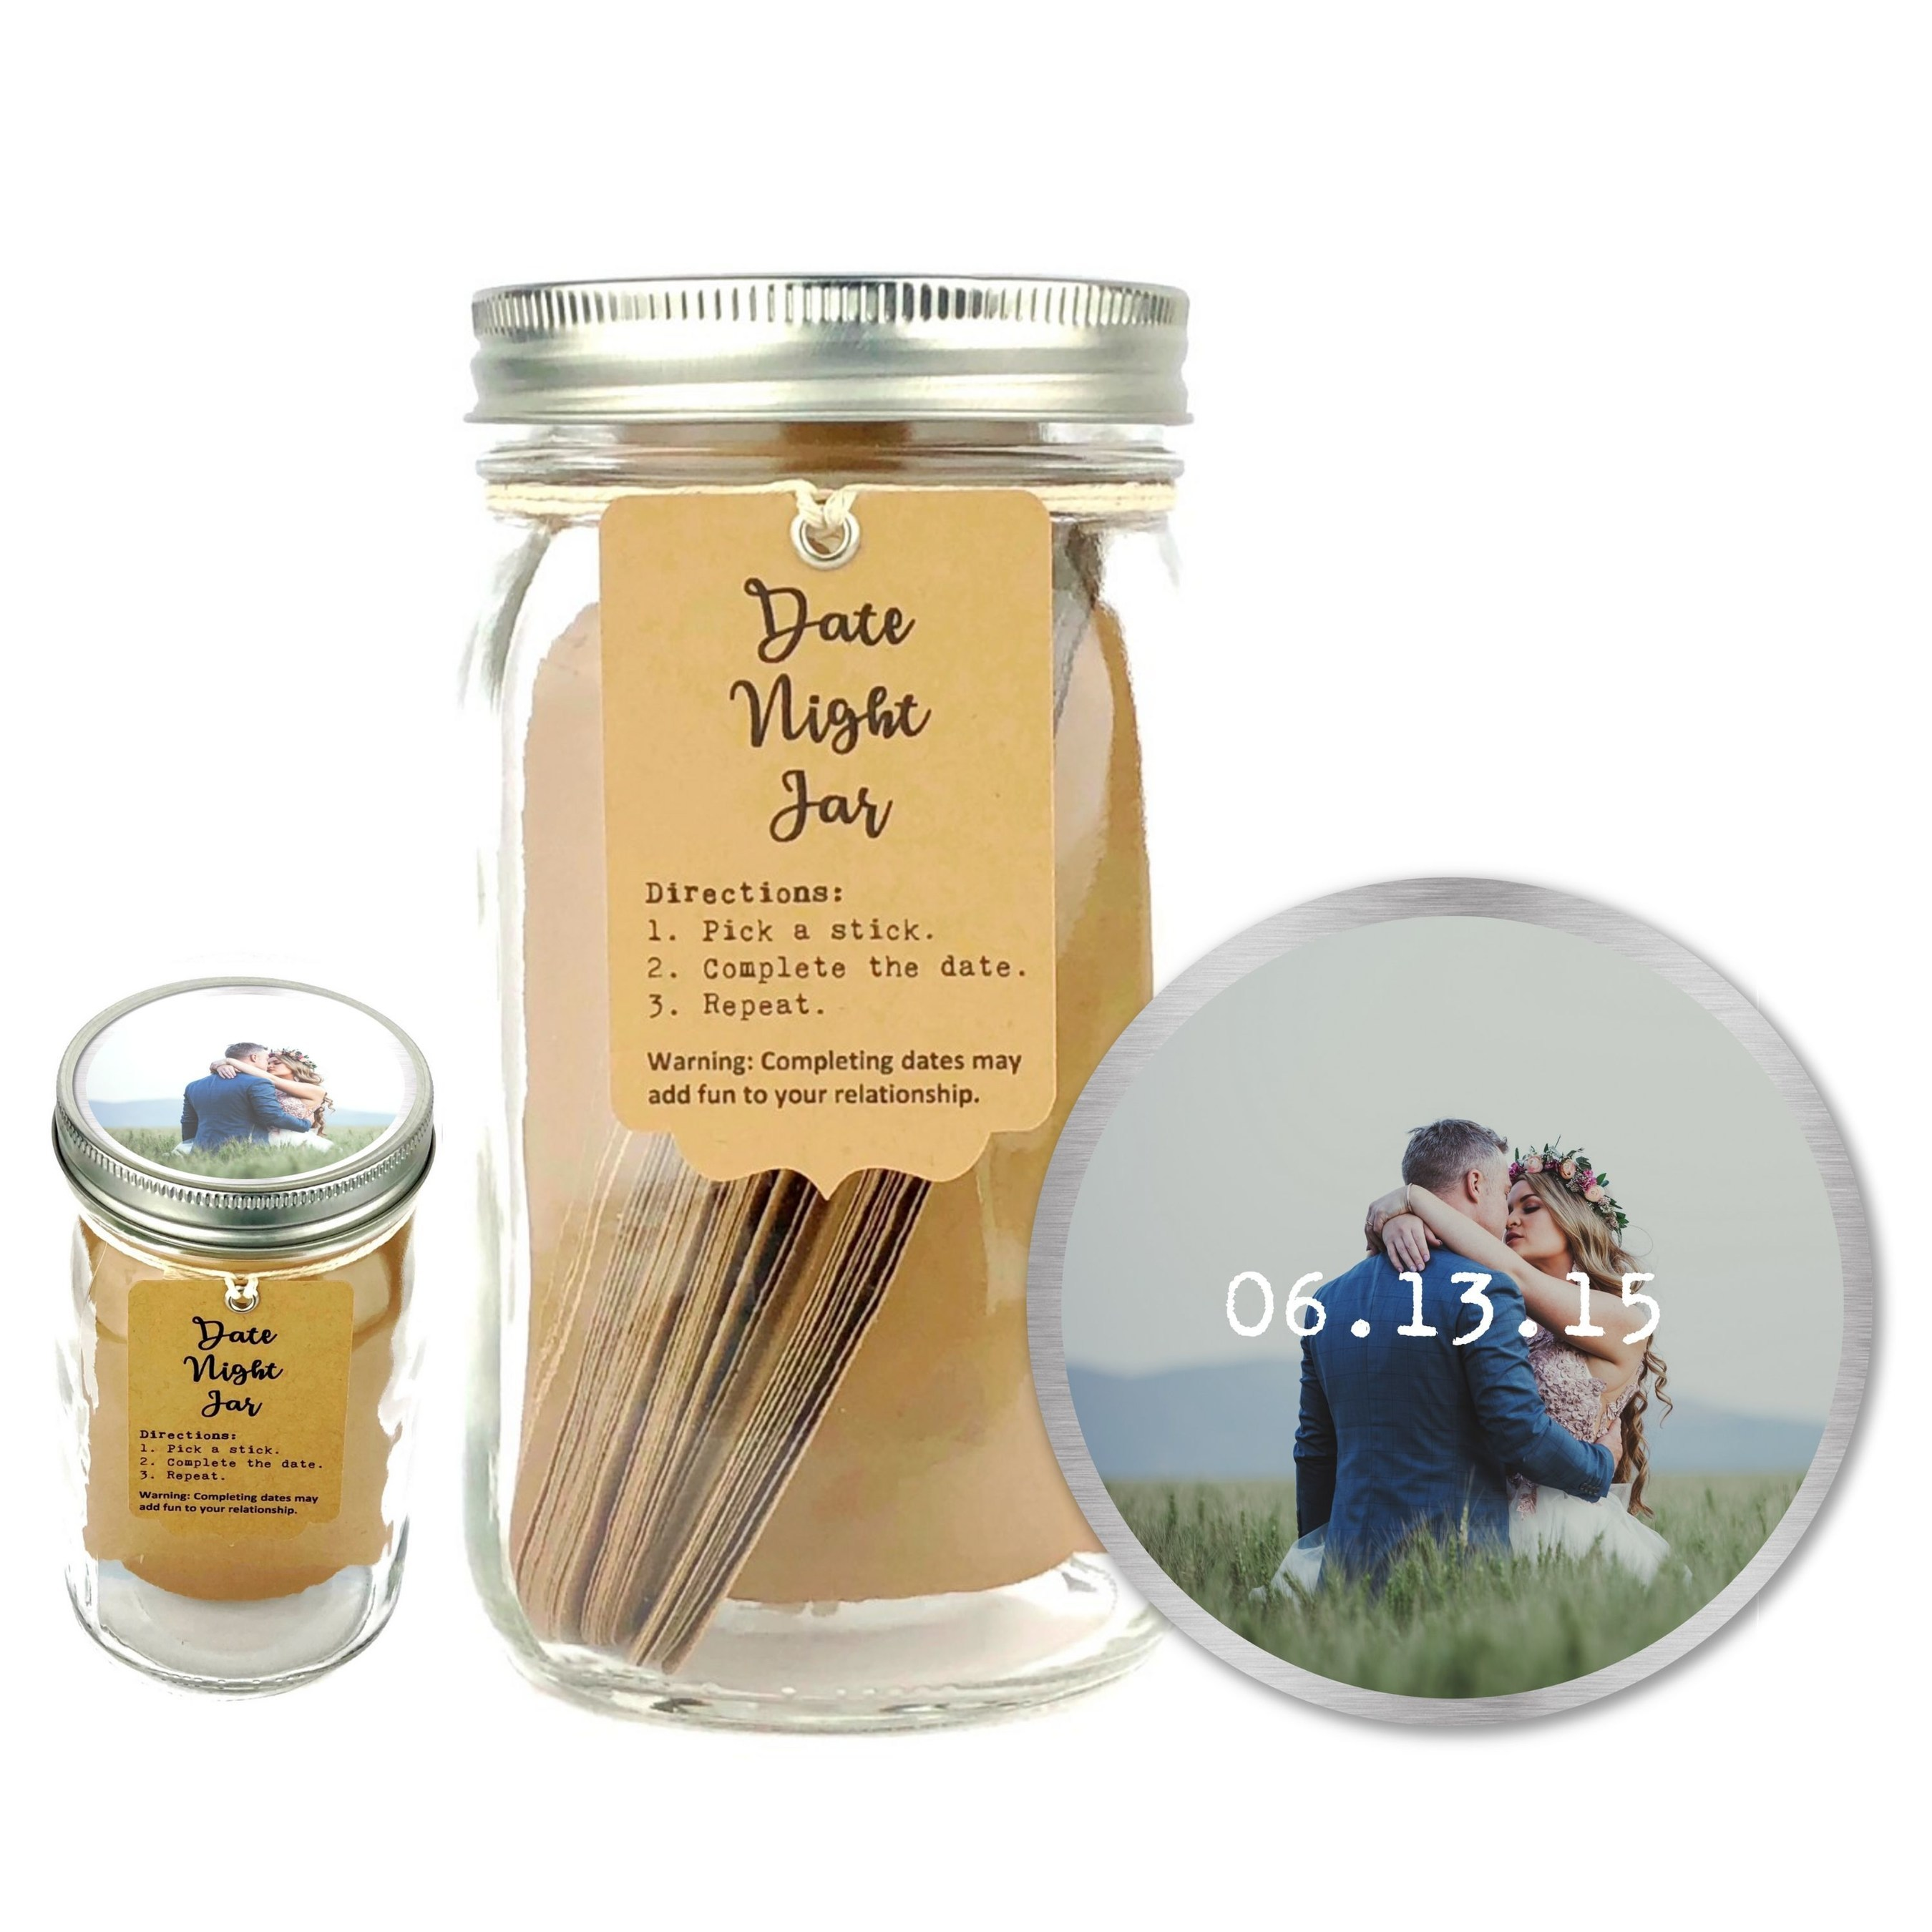 Gtky Proudly Presents Their Exclusive Collection Of Date Night Idea Jars Creating Getting To Know You Adventures